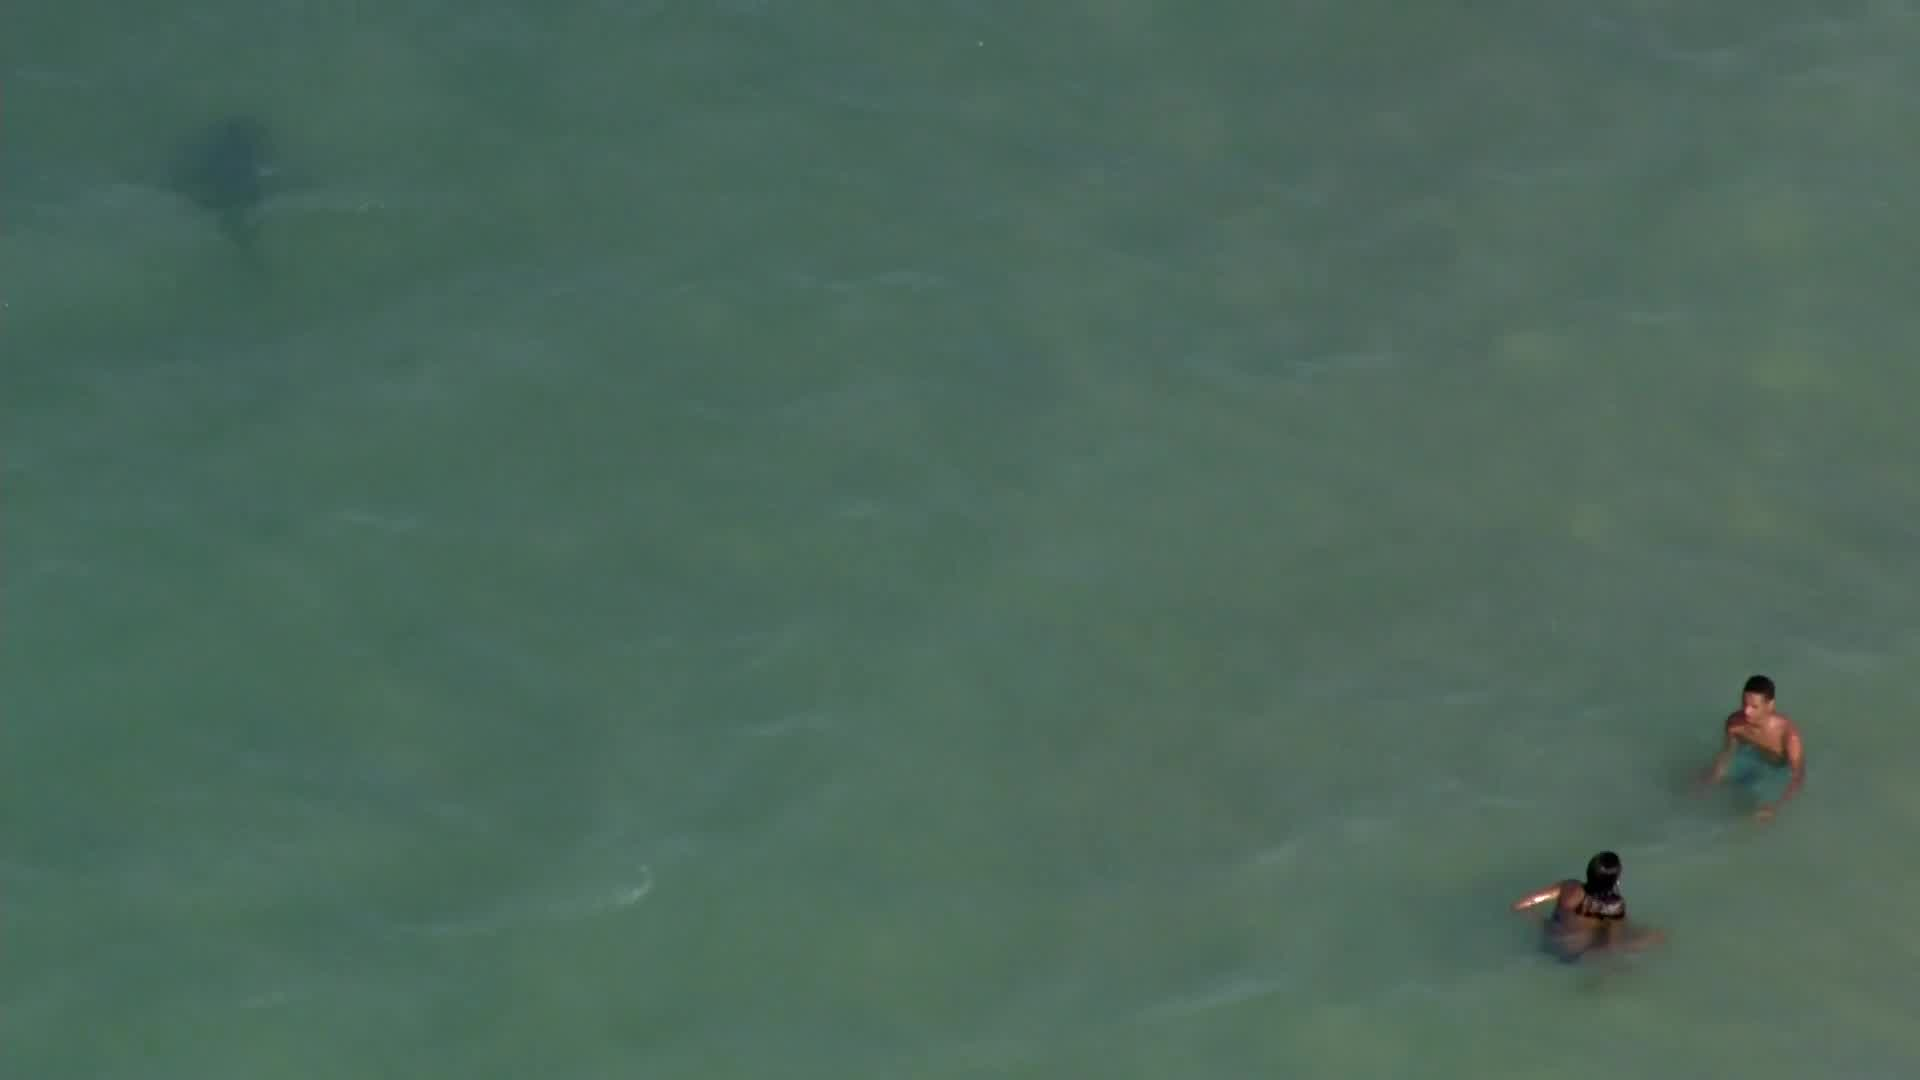 WATCH: Shark spotted swimming close to shore in Daytona Beach | WFLA